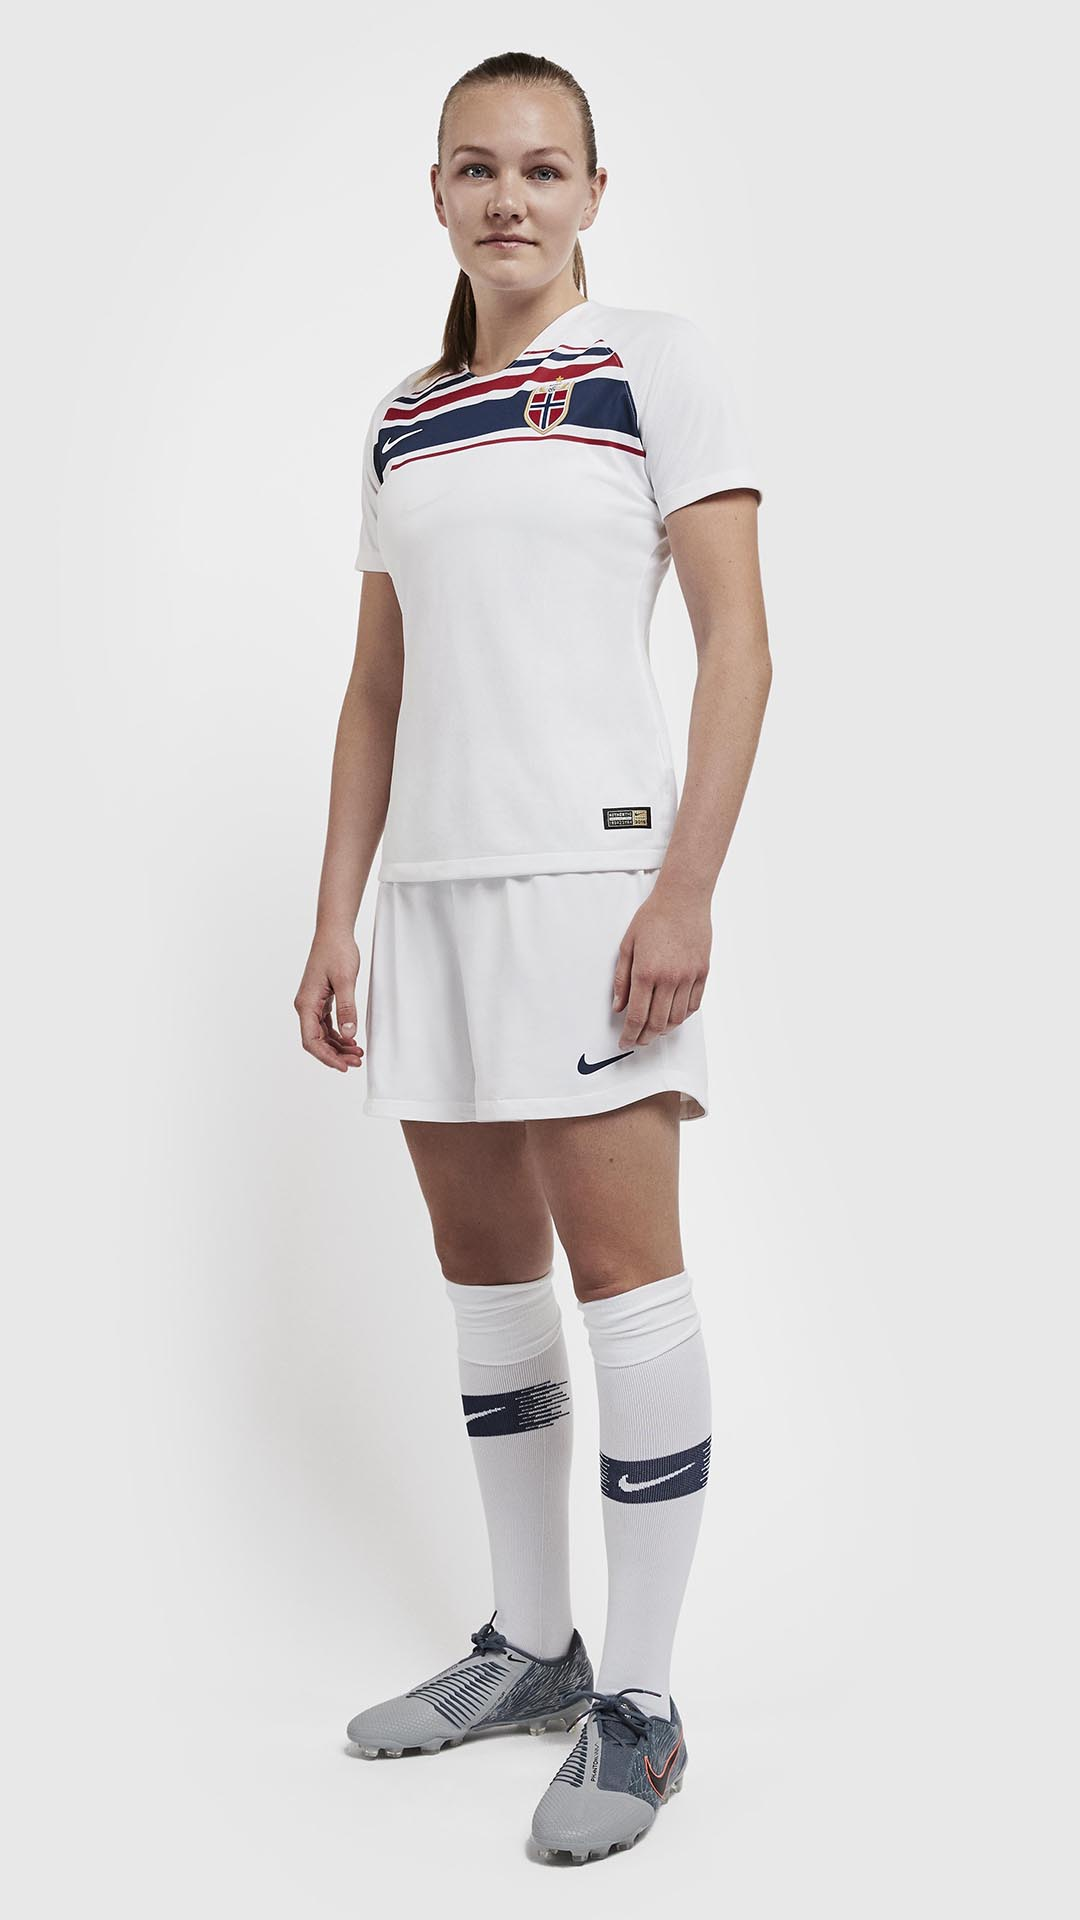 Nike_National_Team_Kit_Norwegen_2.jpg